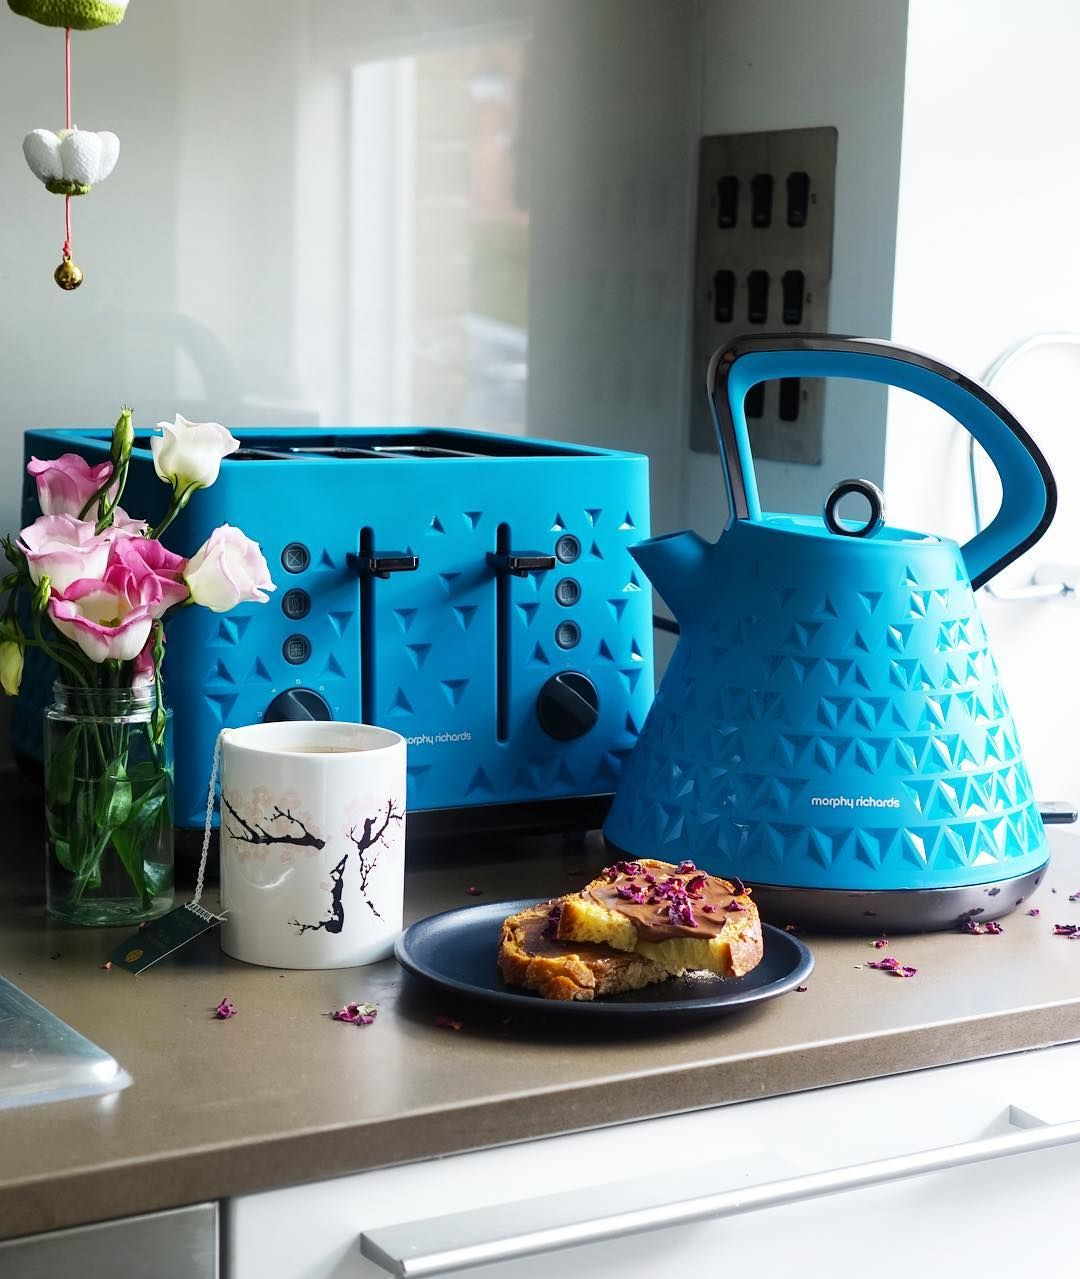 Add a pop of colour to your kitchen with the Morphy